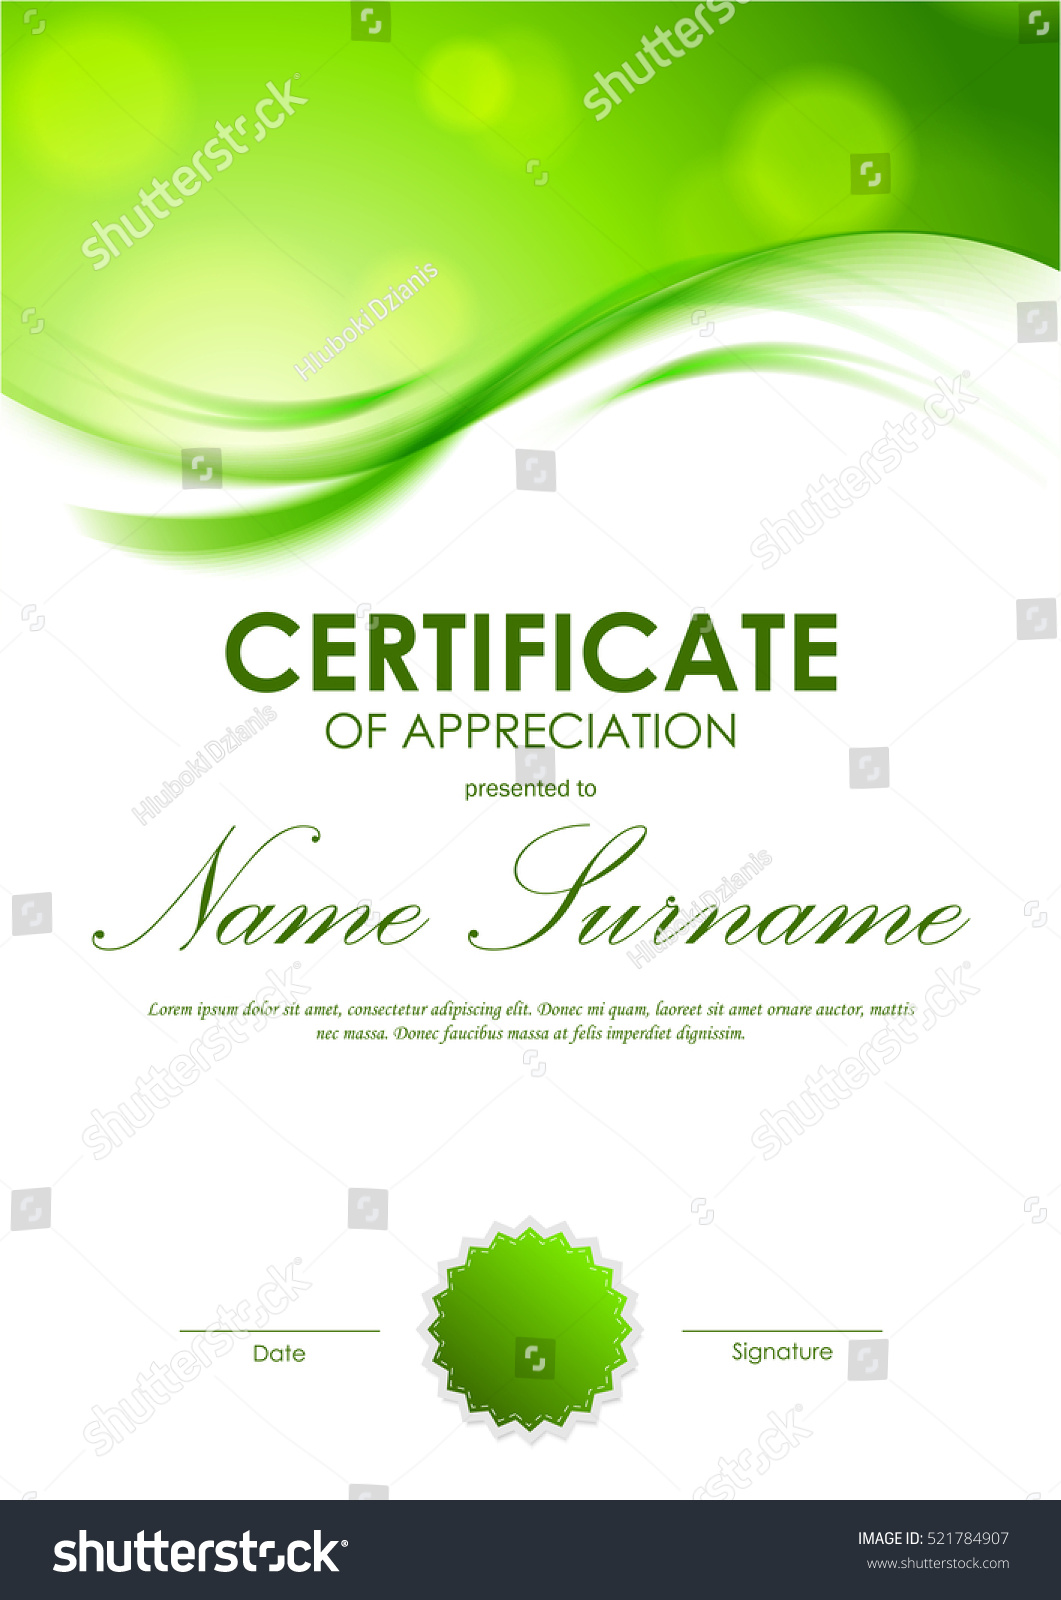 Certificate appreciation template shiny green wavy stock vector certificate of appreciation template with shiny green wavy soft background and seal vector illustration alramifo Image collections